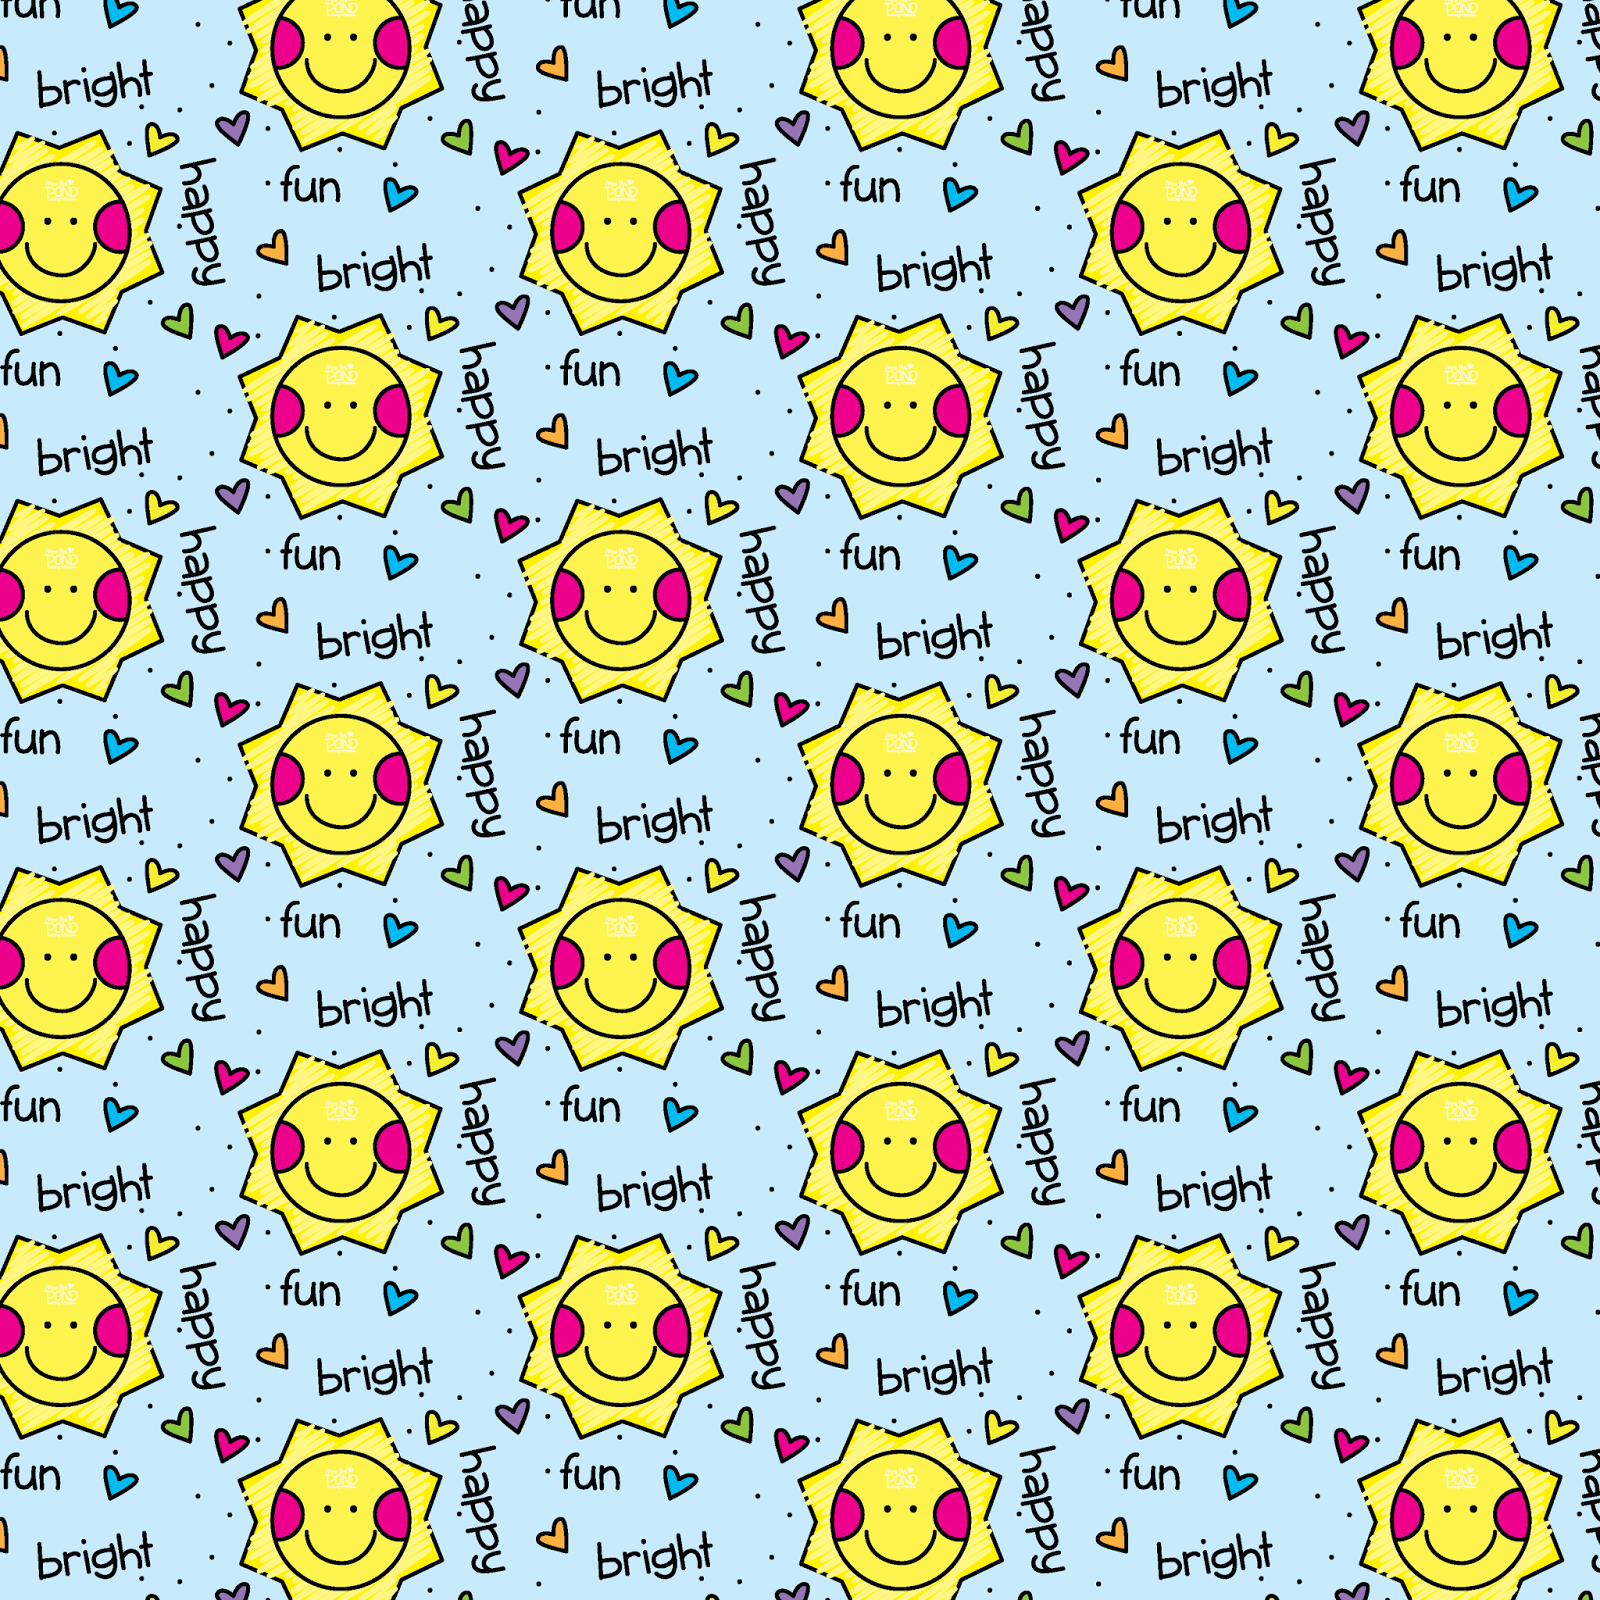 Fun Happy Bright Wallpaper From the Pond